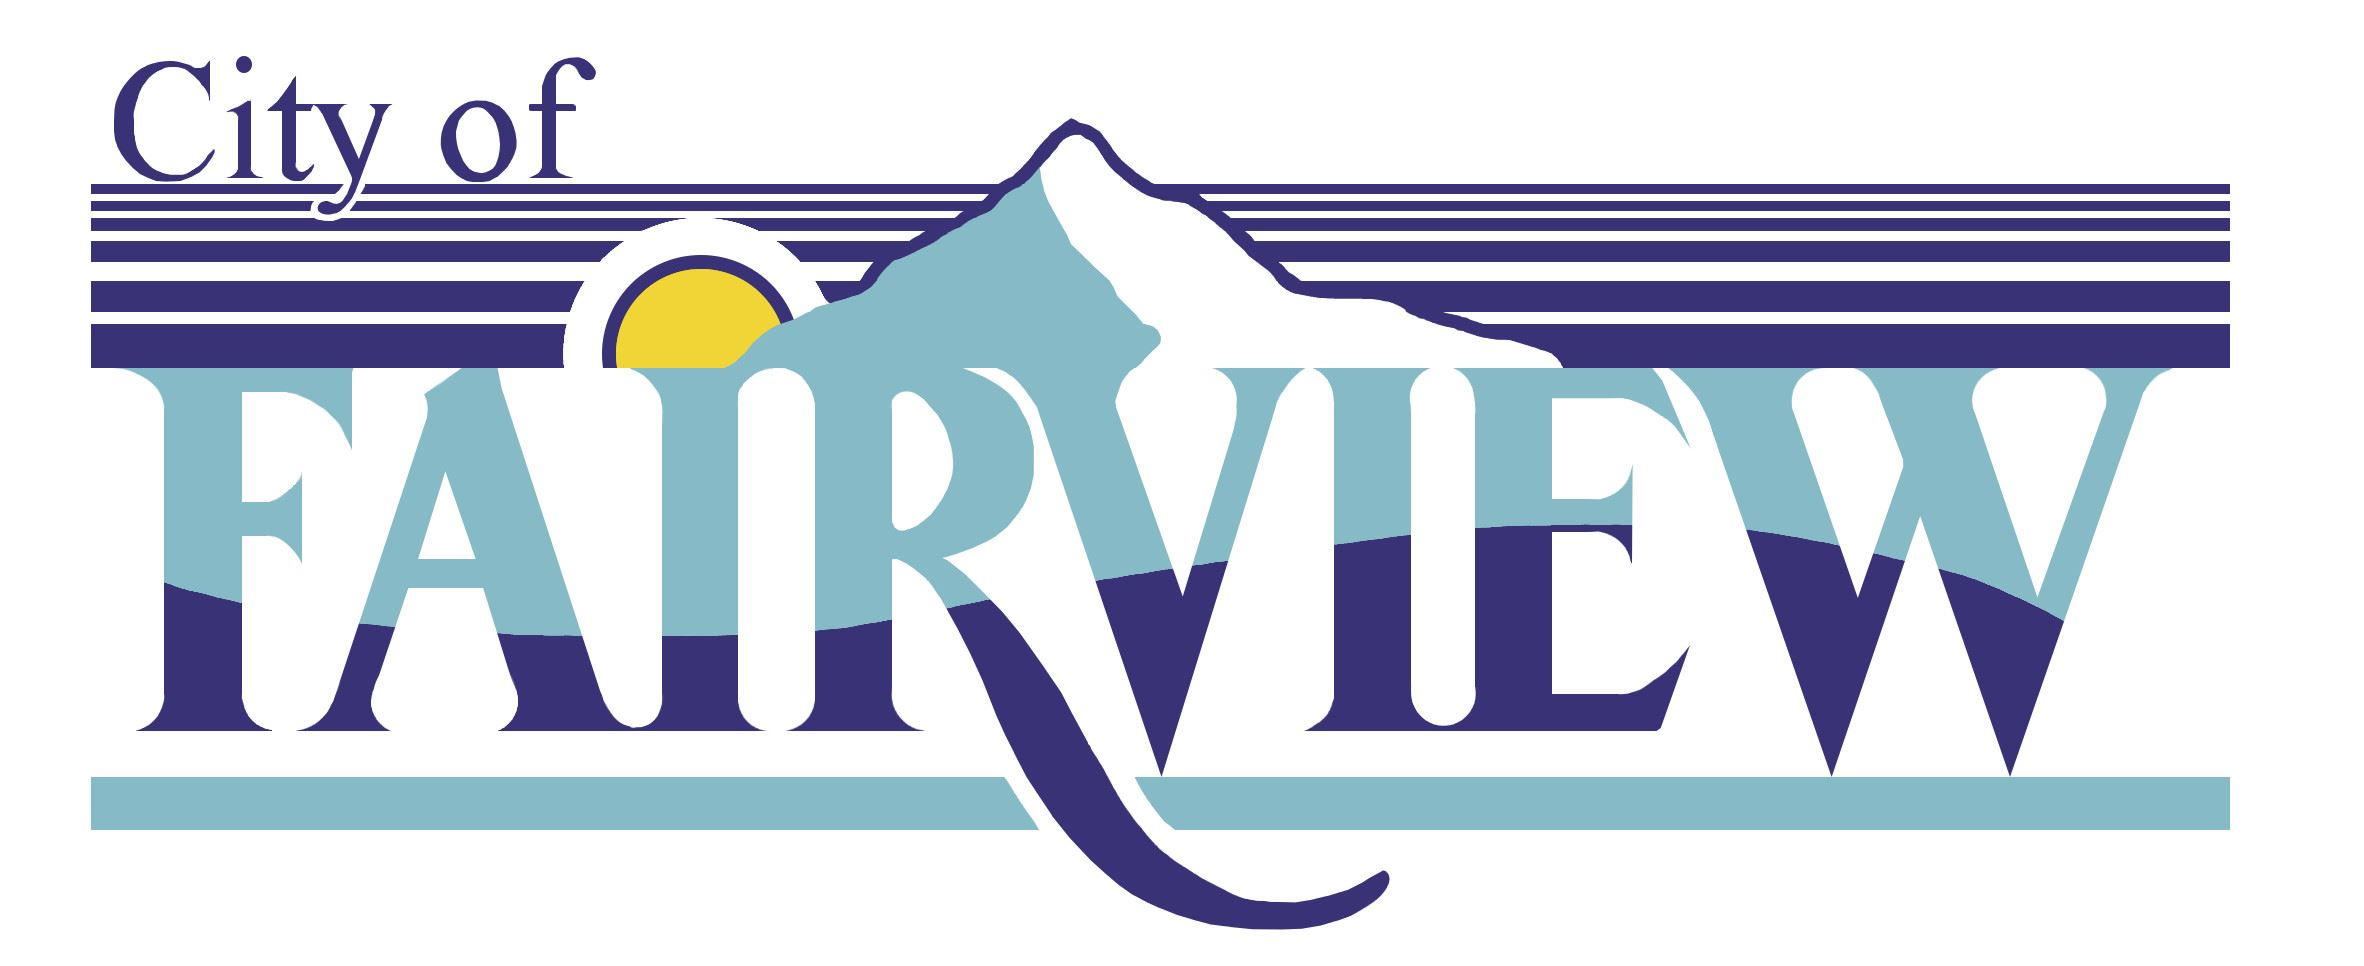 City of Fairview Logo (JPG)